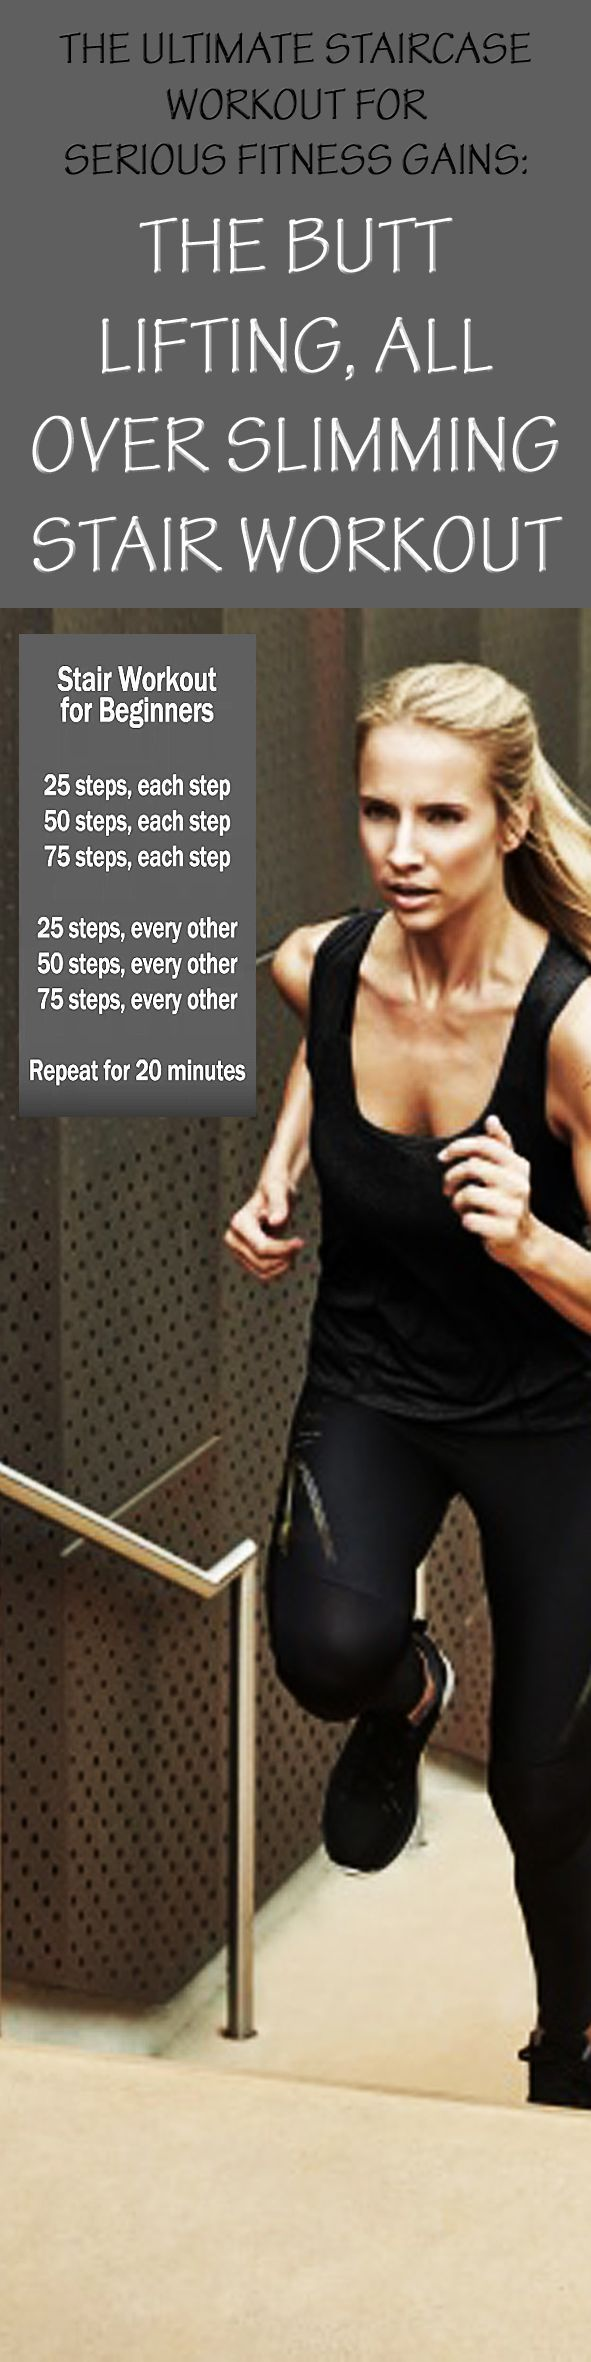 The Ultimate Staircase Workout For Serious Fitness Gains: The Butt-Lifting…